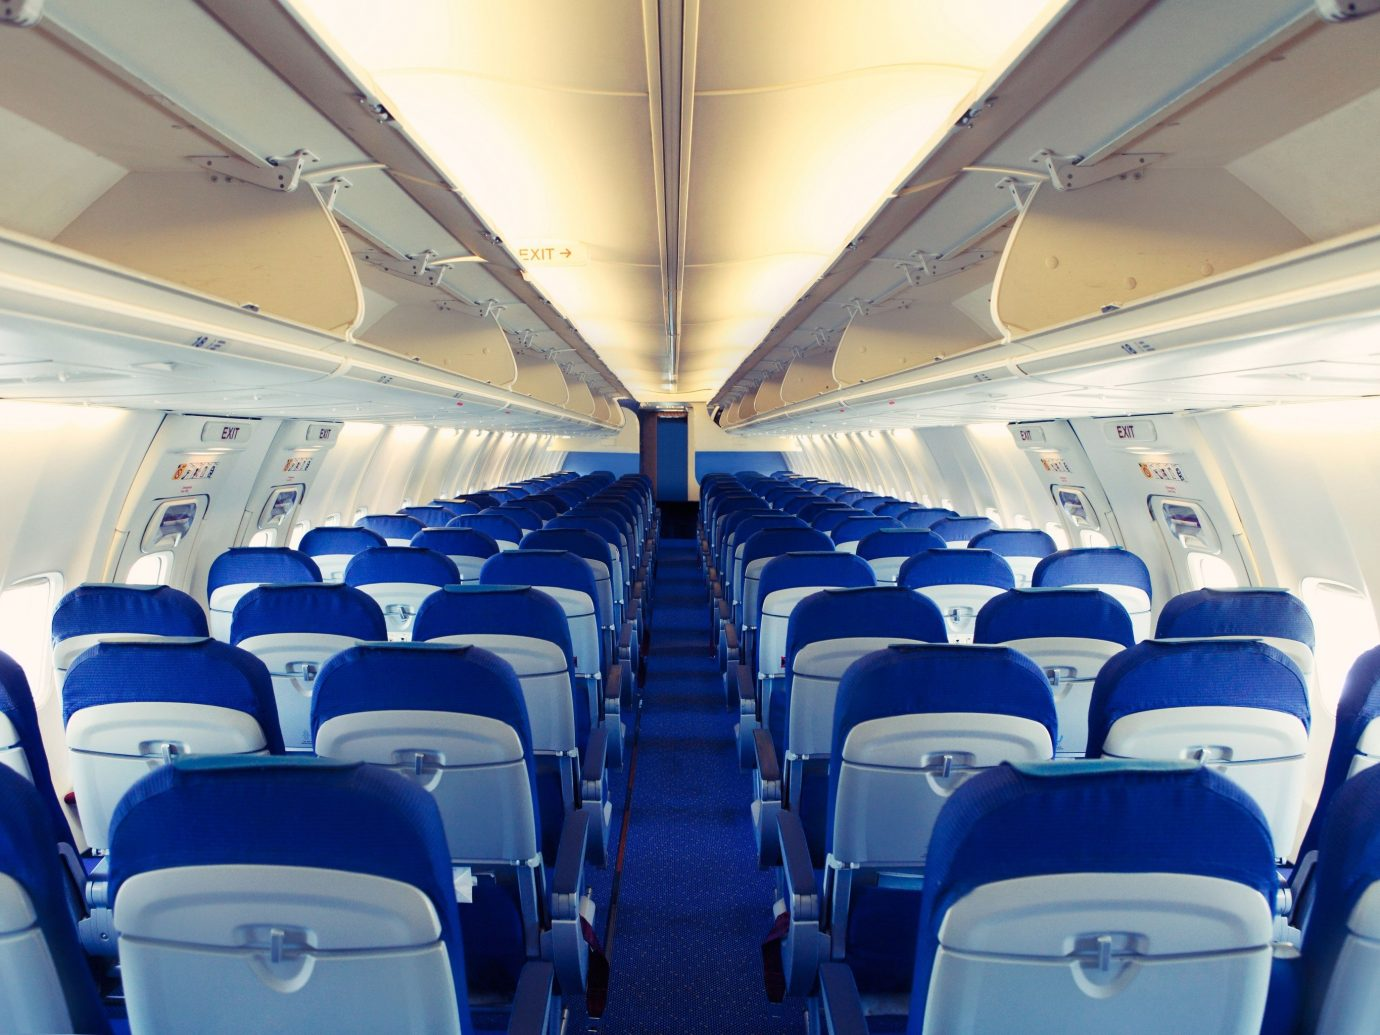 Offbeat Cabin indoor airline transport air travel vehicle scene airplane ceiling aircraft aircraft cabin train passenger aviation public transport airliner jet aircraft